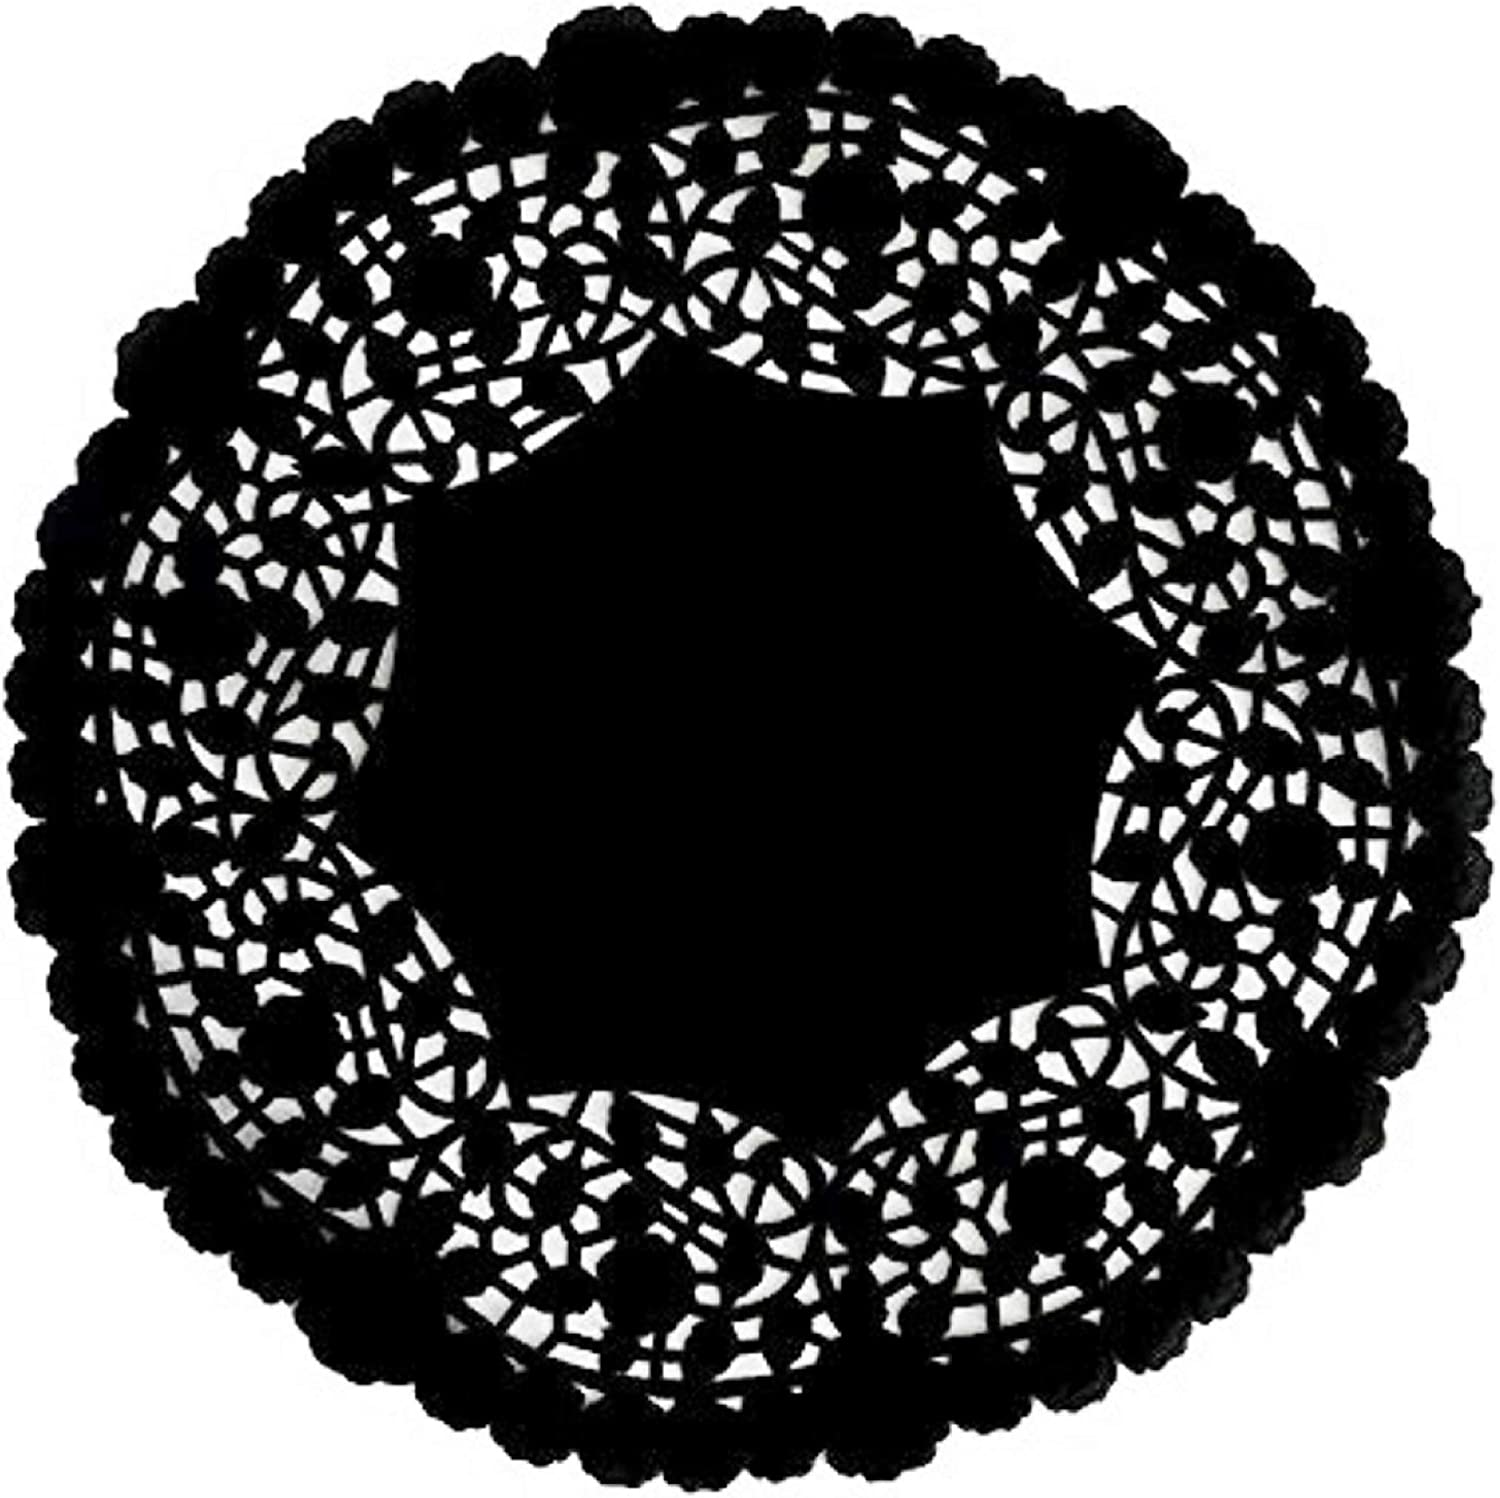 The Baker Celebrations Black Paper Lace Doilies - Pack of 30 - Disposable 10 inches Table Placemats Made in Canada